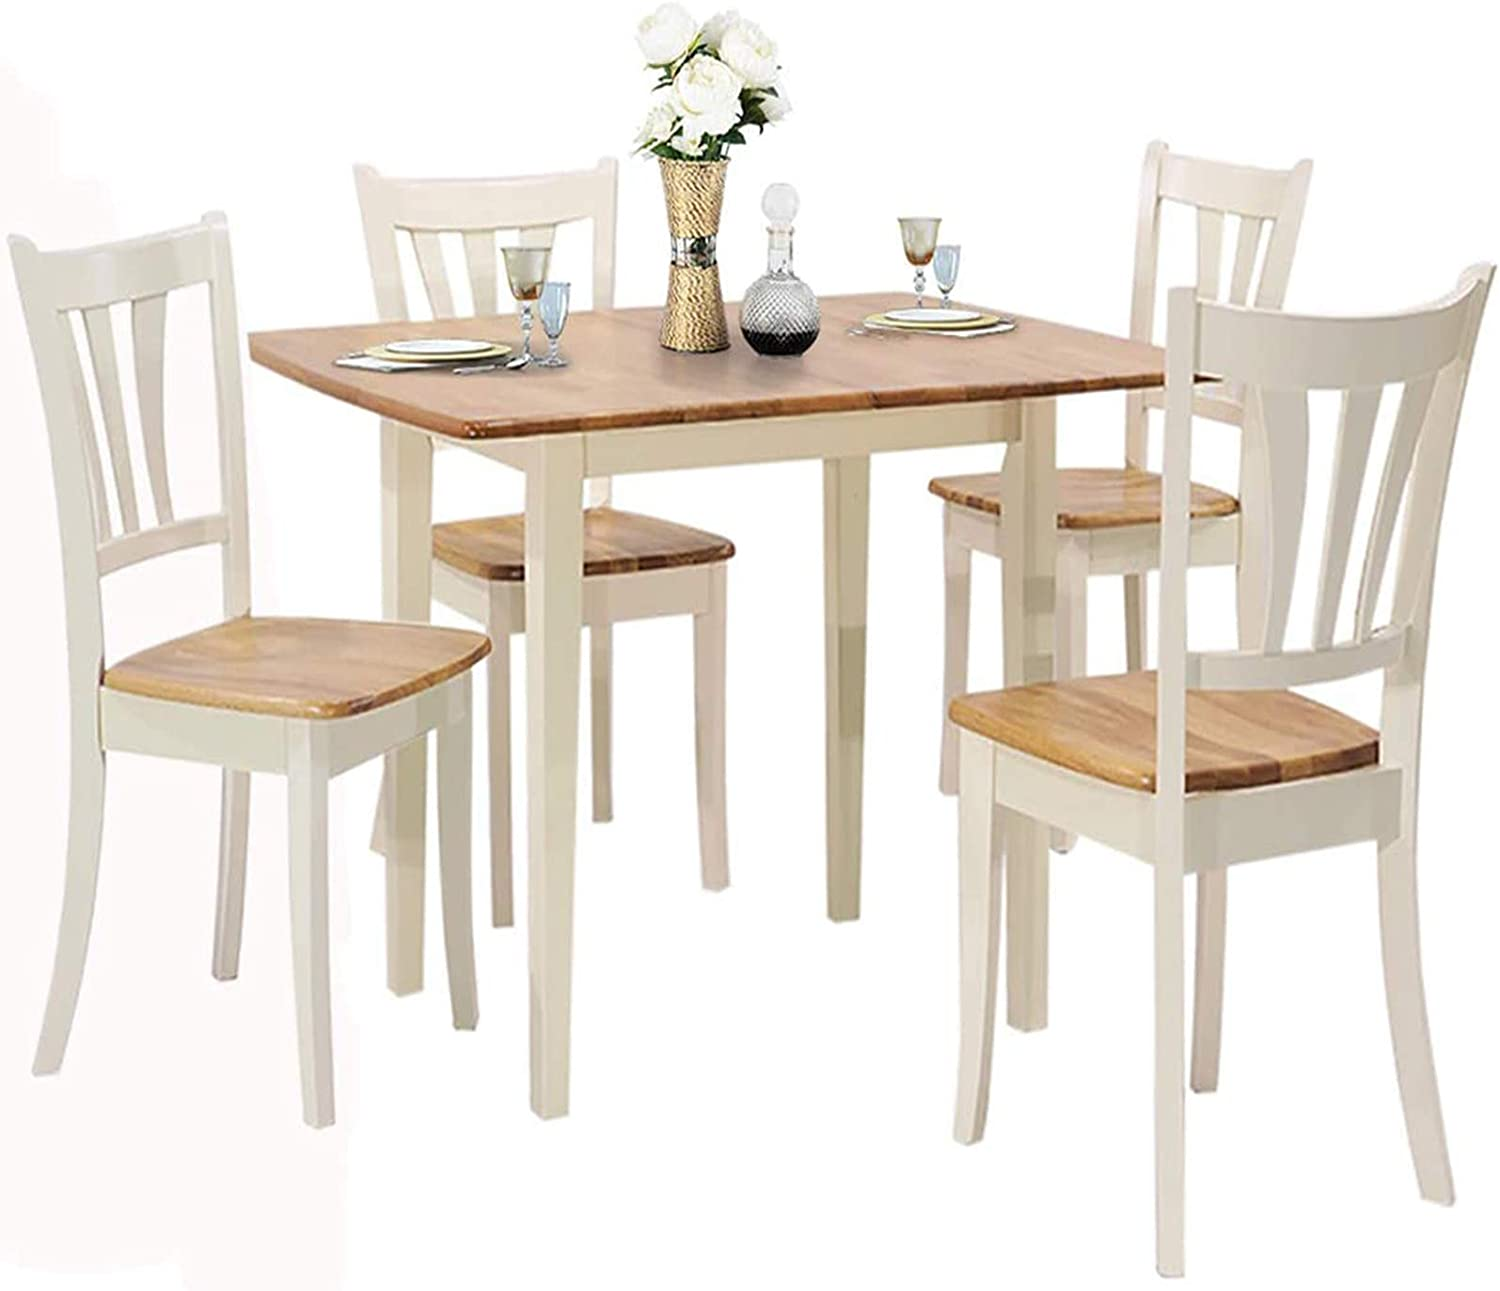 Buy Giantex 9 Piece Dining Table Set with Folding Tabletop, Wood ...